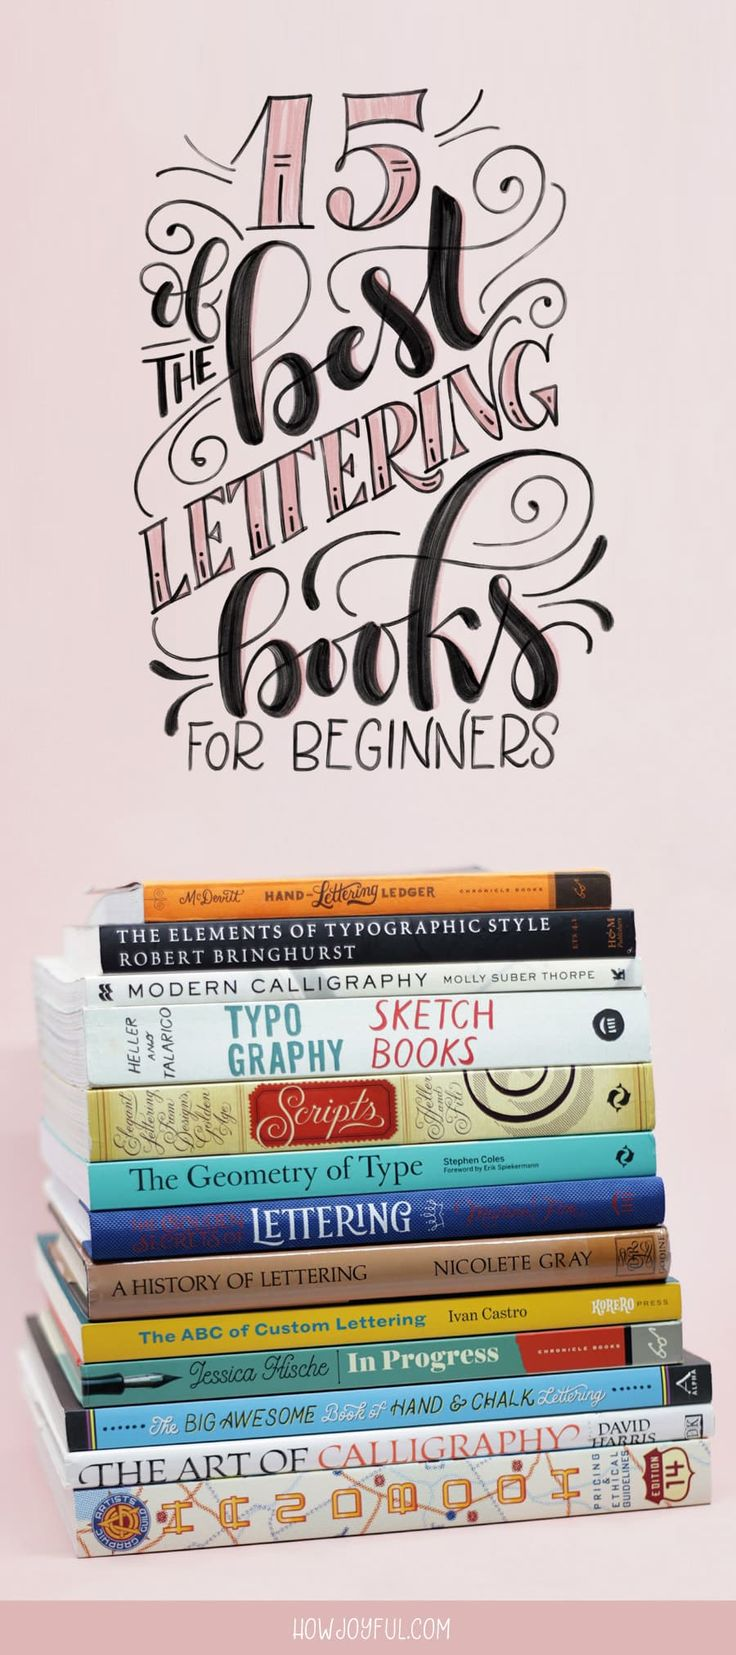 Hand-Lettering Tips For Beginners: Where Do You Begin?